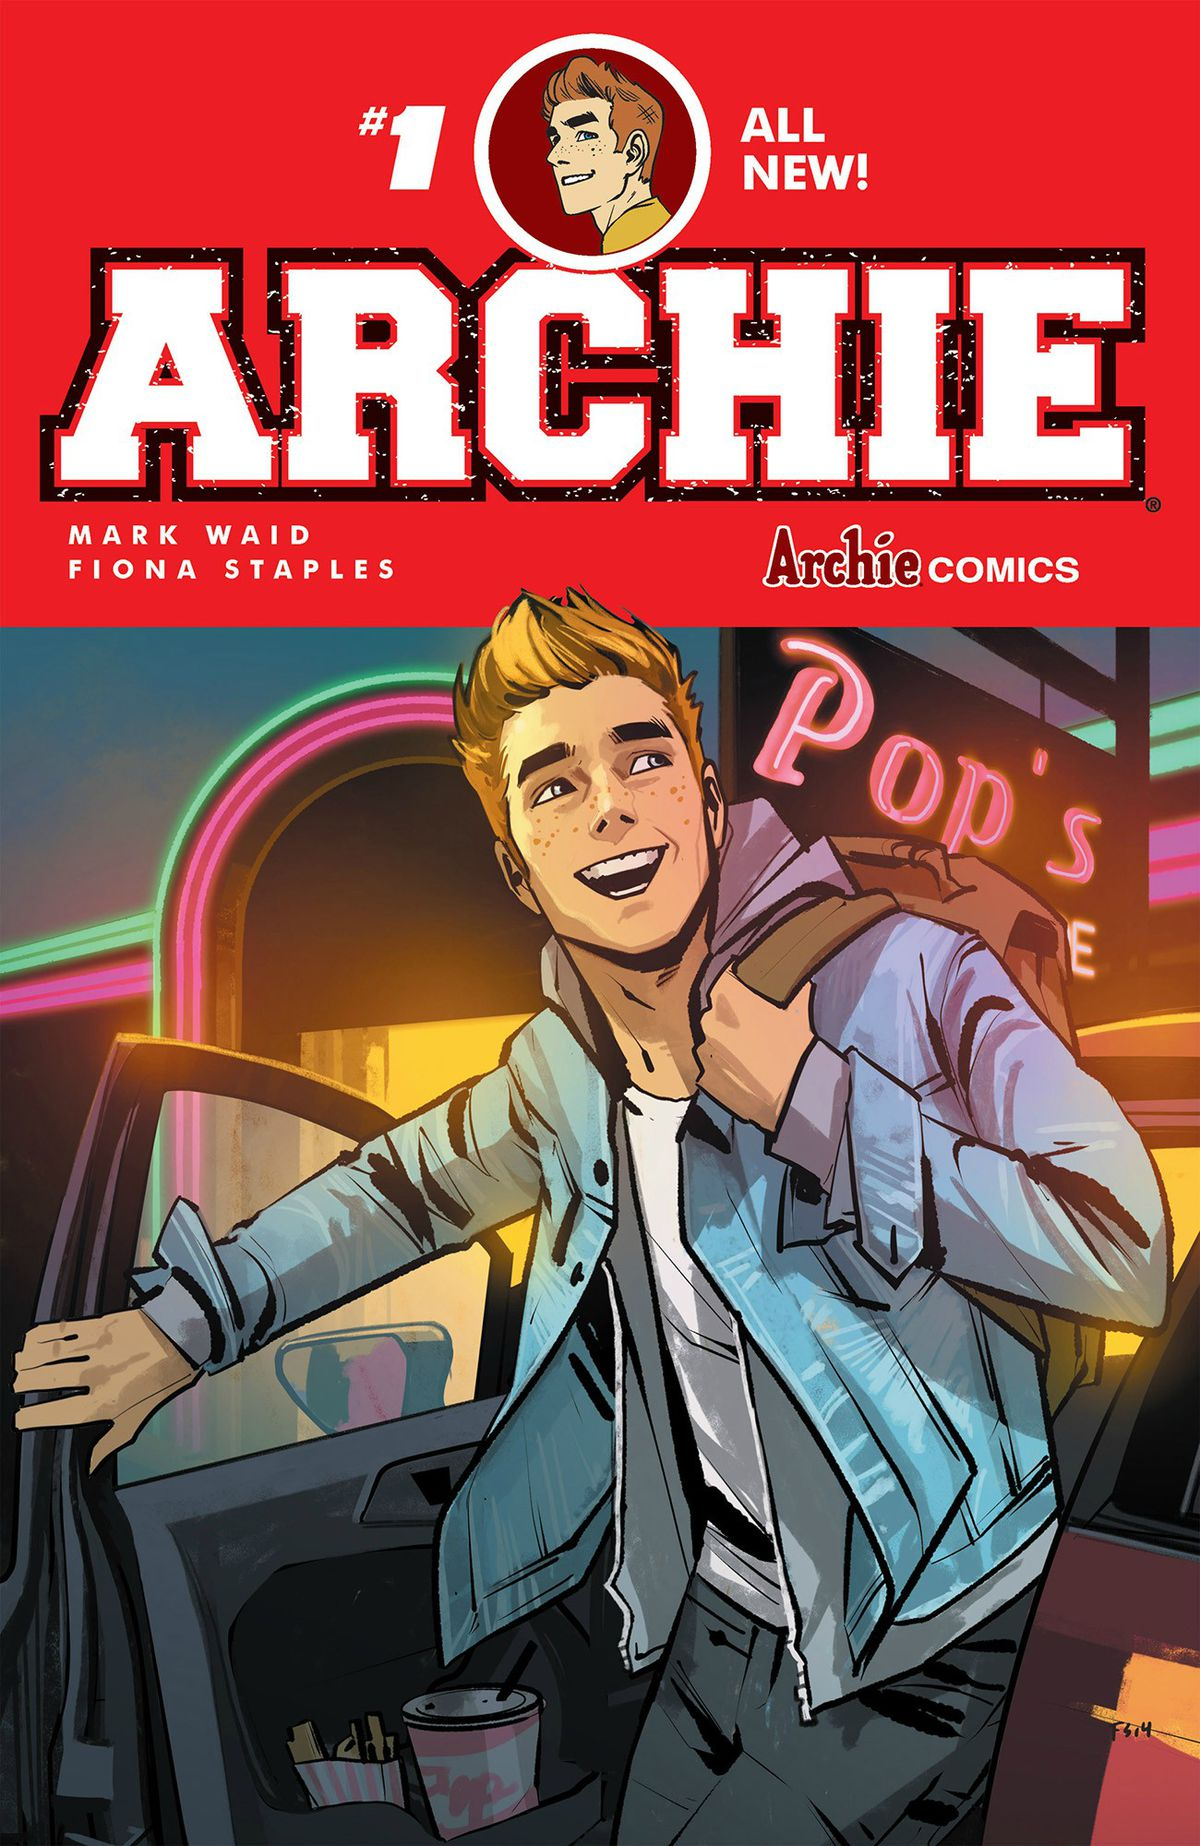 The cover of the rebooted Archie series, written by Mark Waid and drawn by Fiona Staples.